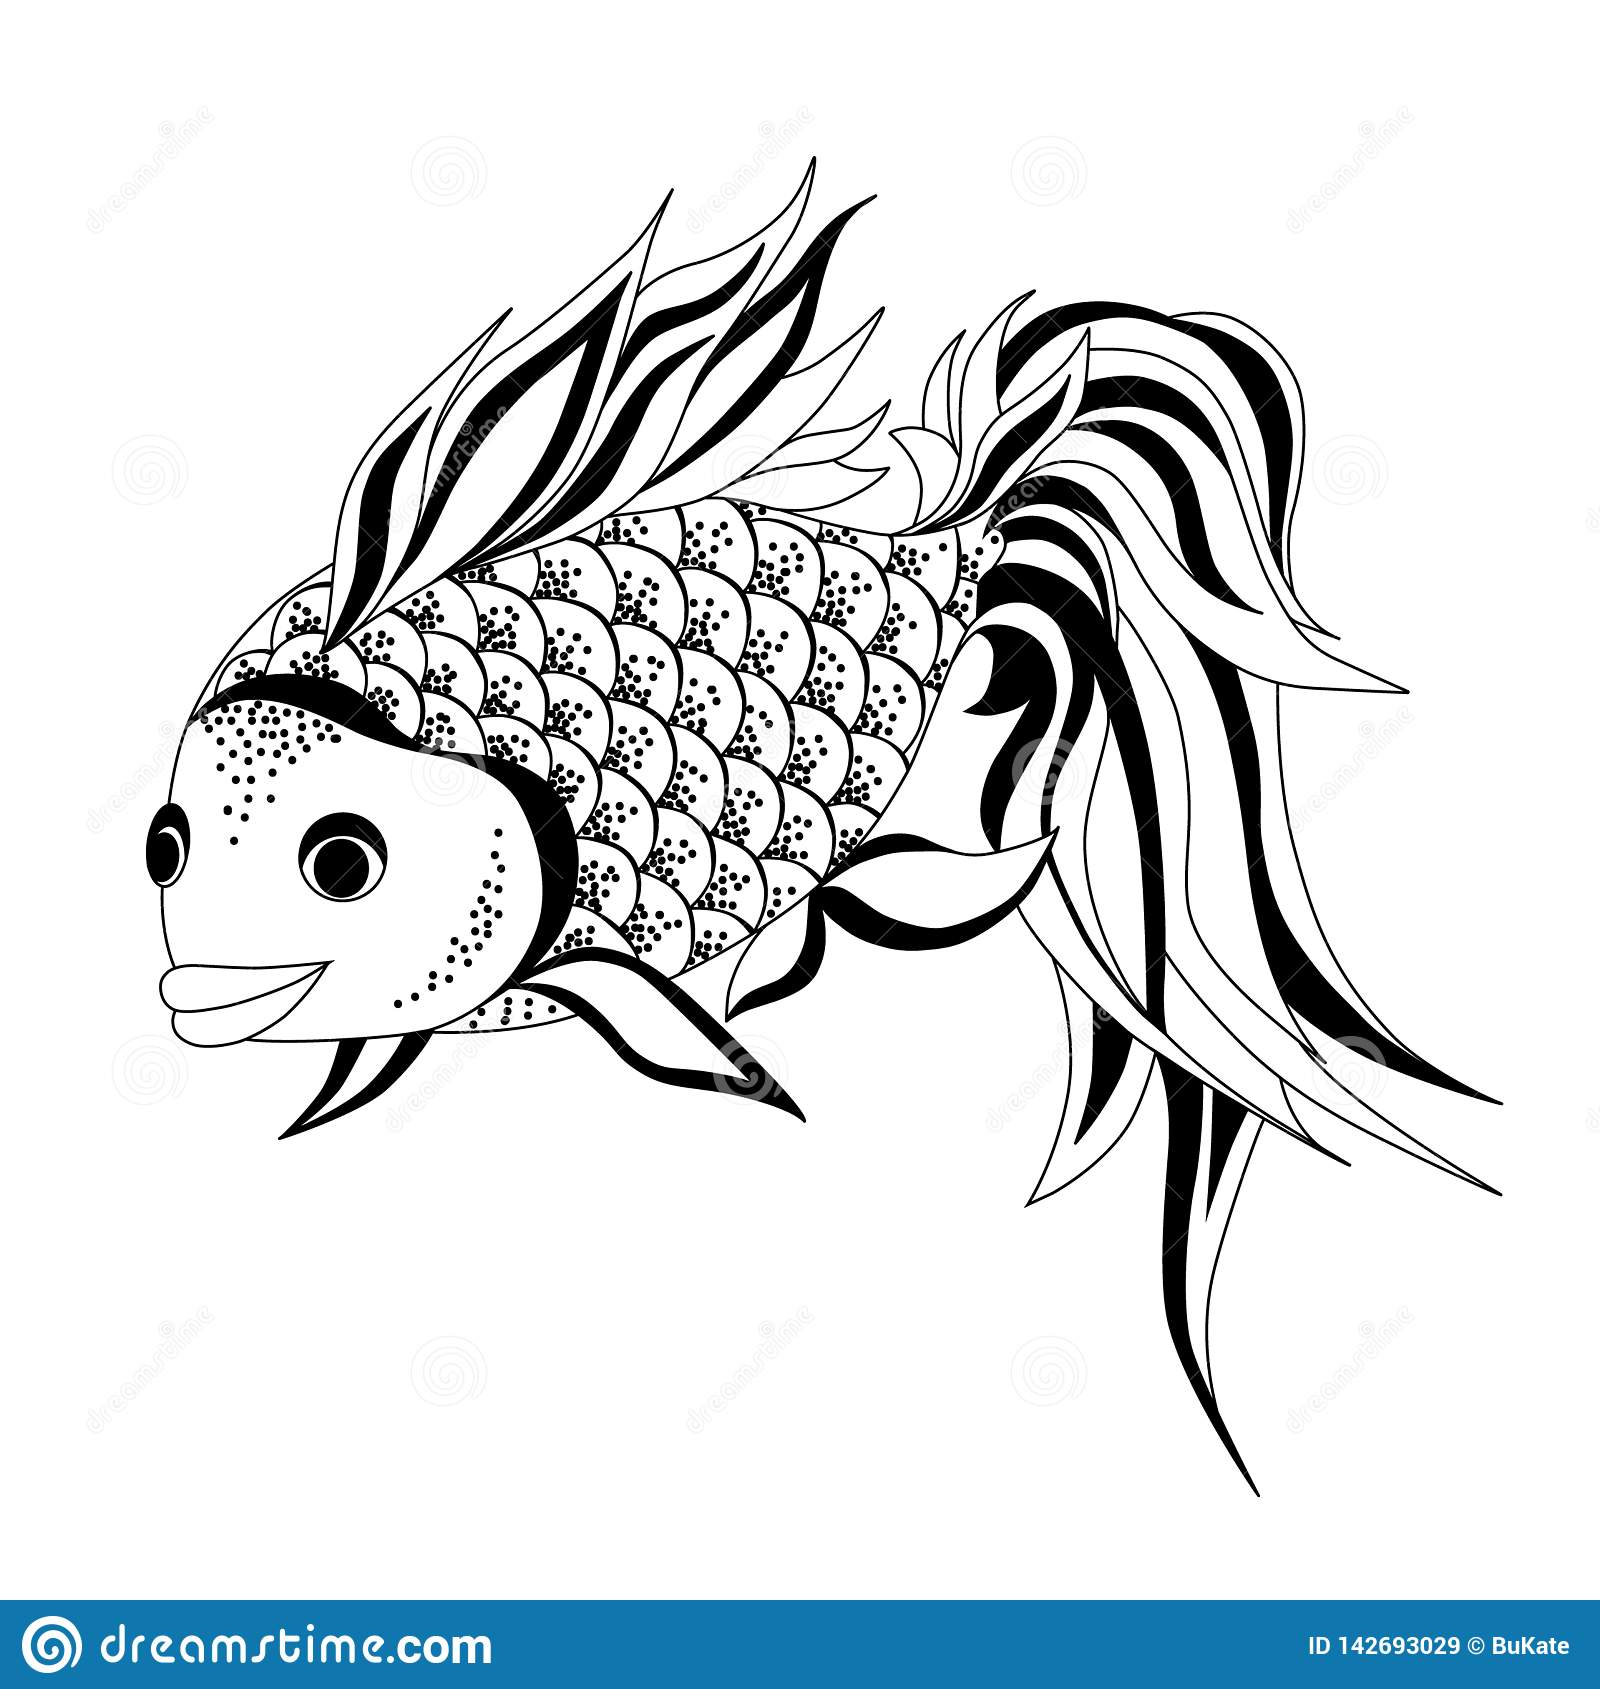 Dessin De Vecteur De Poisson Rouge Illustration De Vecteur Illustration Du Dessin Poisson 142693029